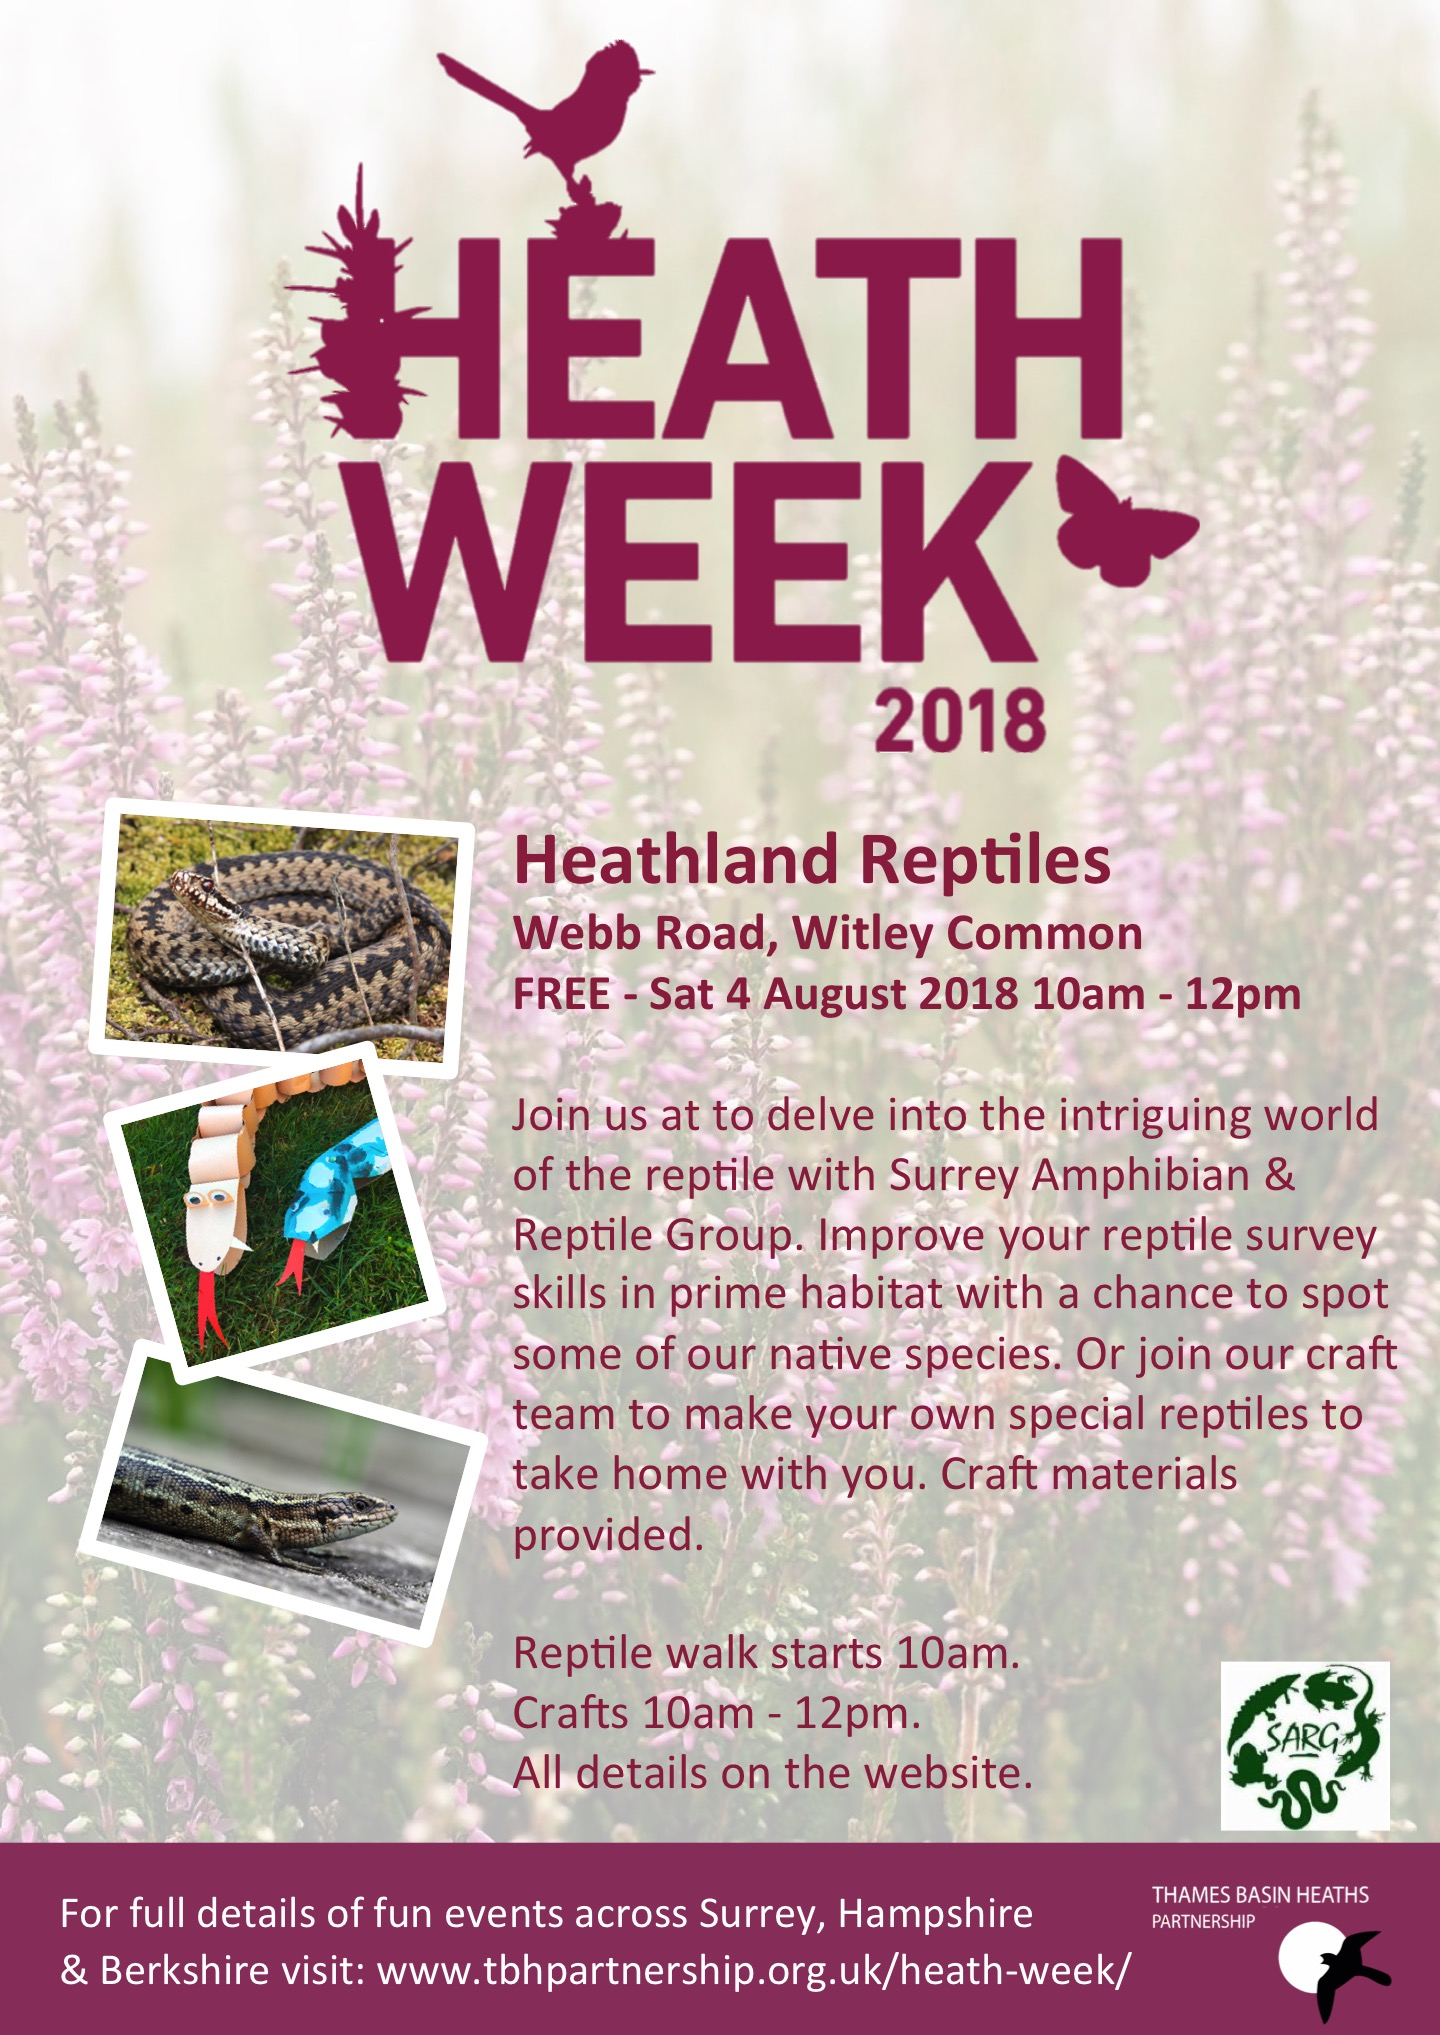 Heath Week poster for Reptiles at Witley